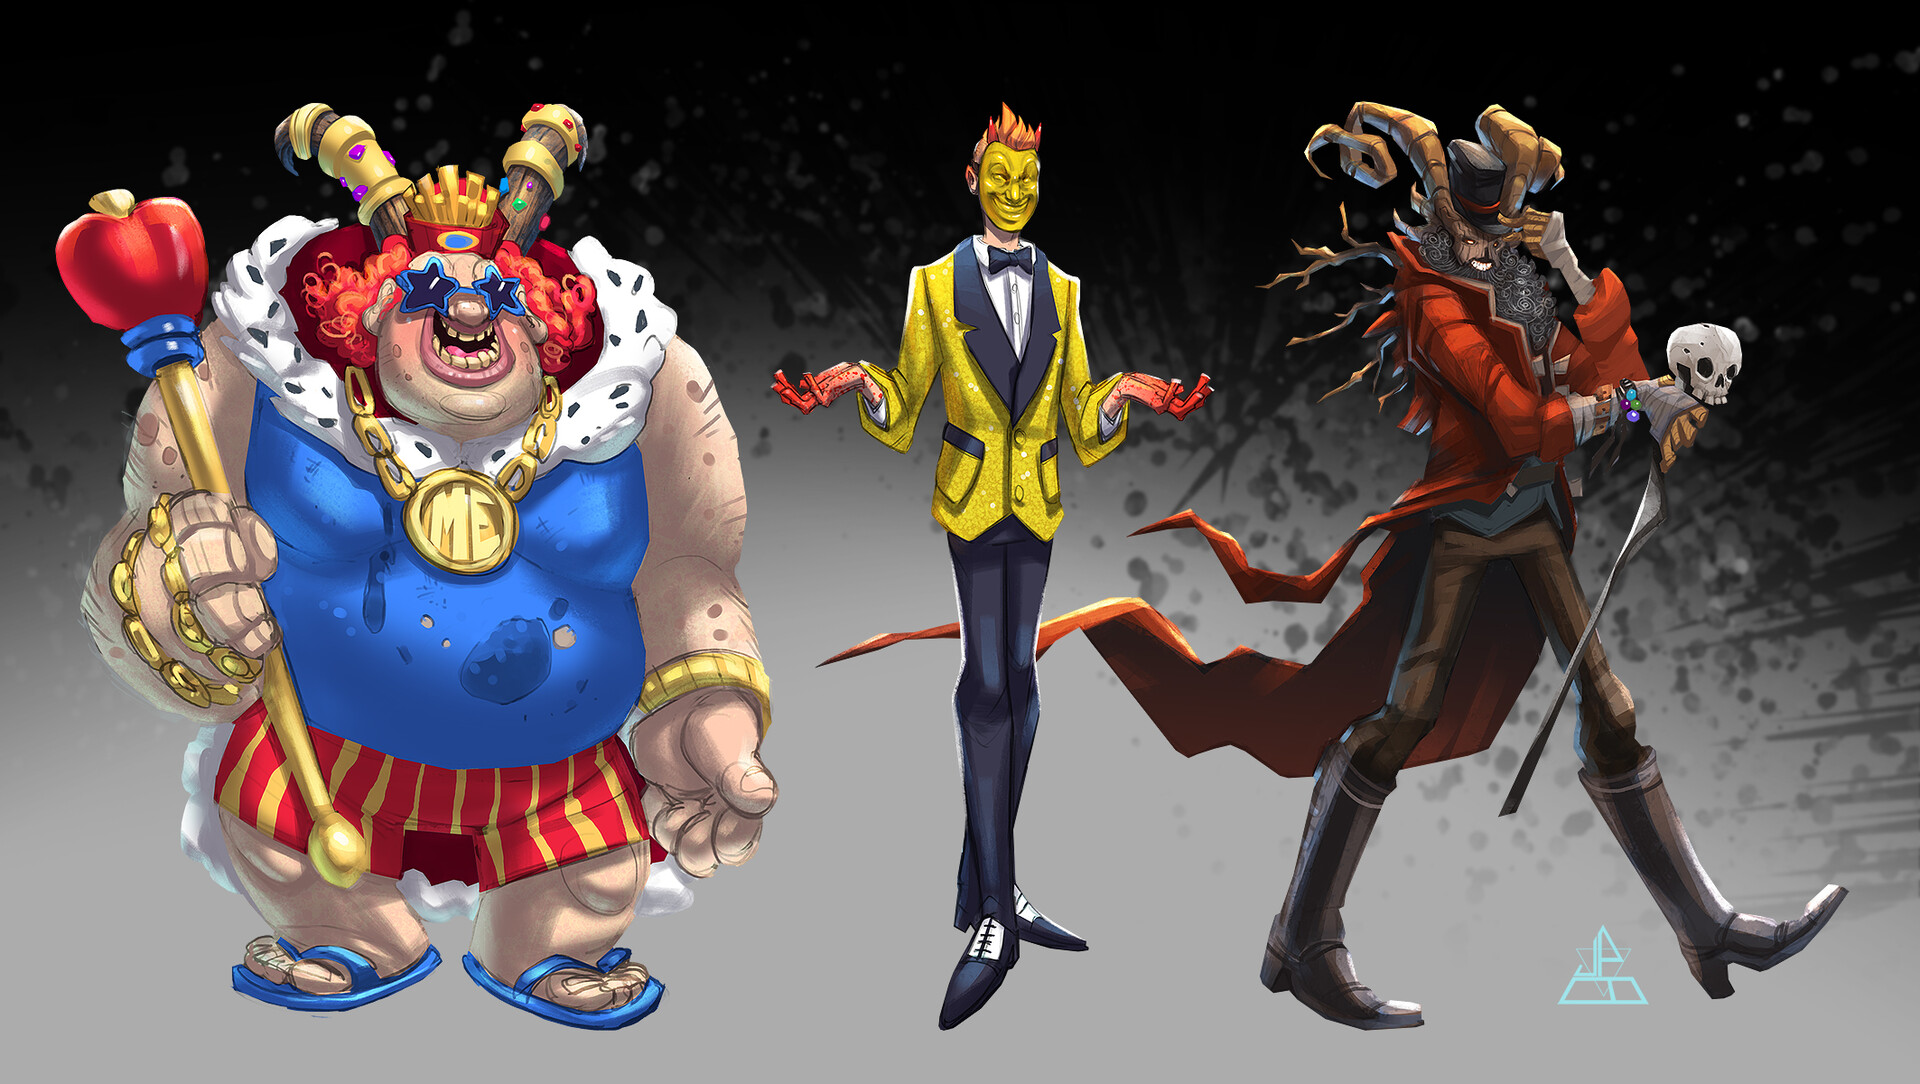 Plenty King, Mister Smiley and the Jolly Rambler - 3 of the pop culture demons encountered in the game.